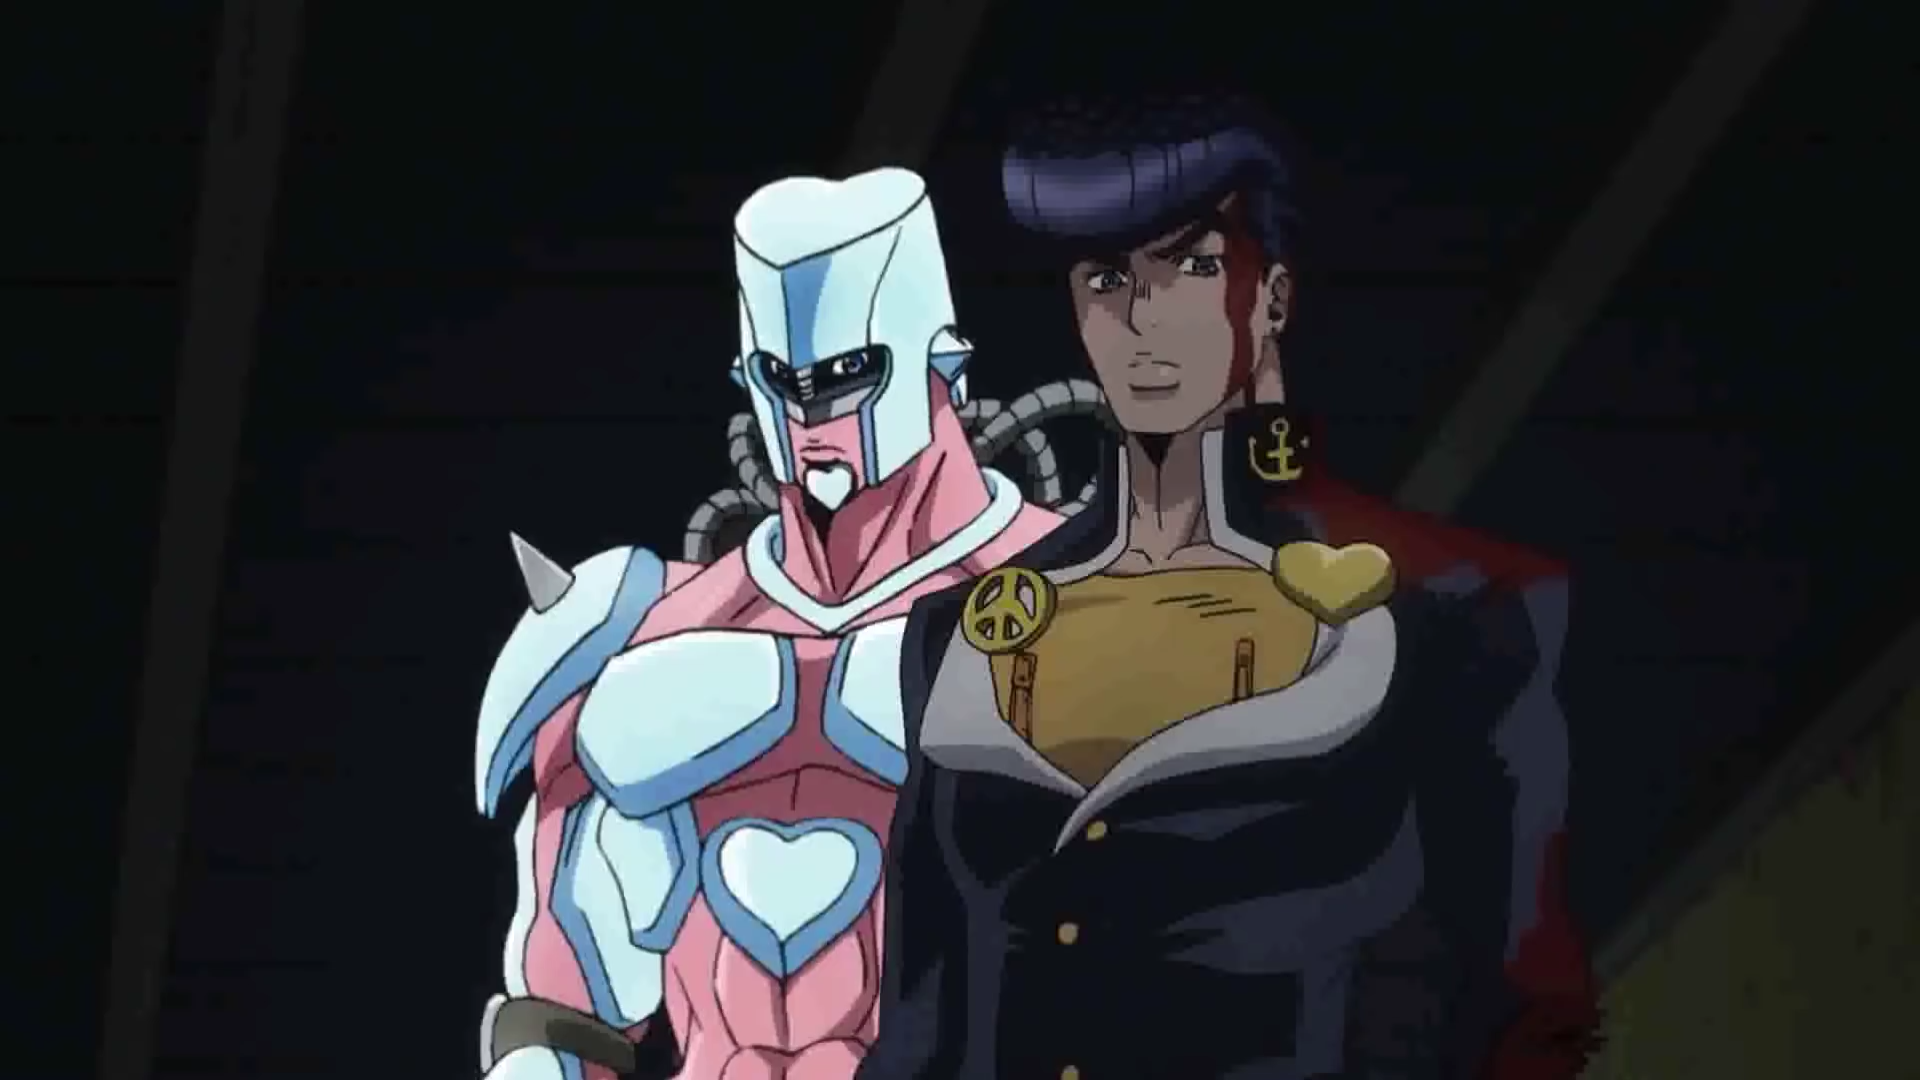 Josuke Higashikata Wikipedia He discovers that josuke also has the same stand power and that a new threat is surfacing in morioh city. josuke higashikata wikipedia